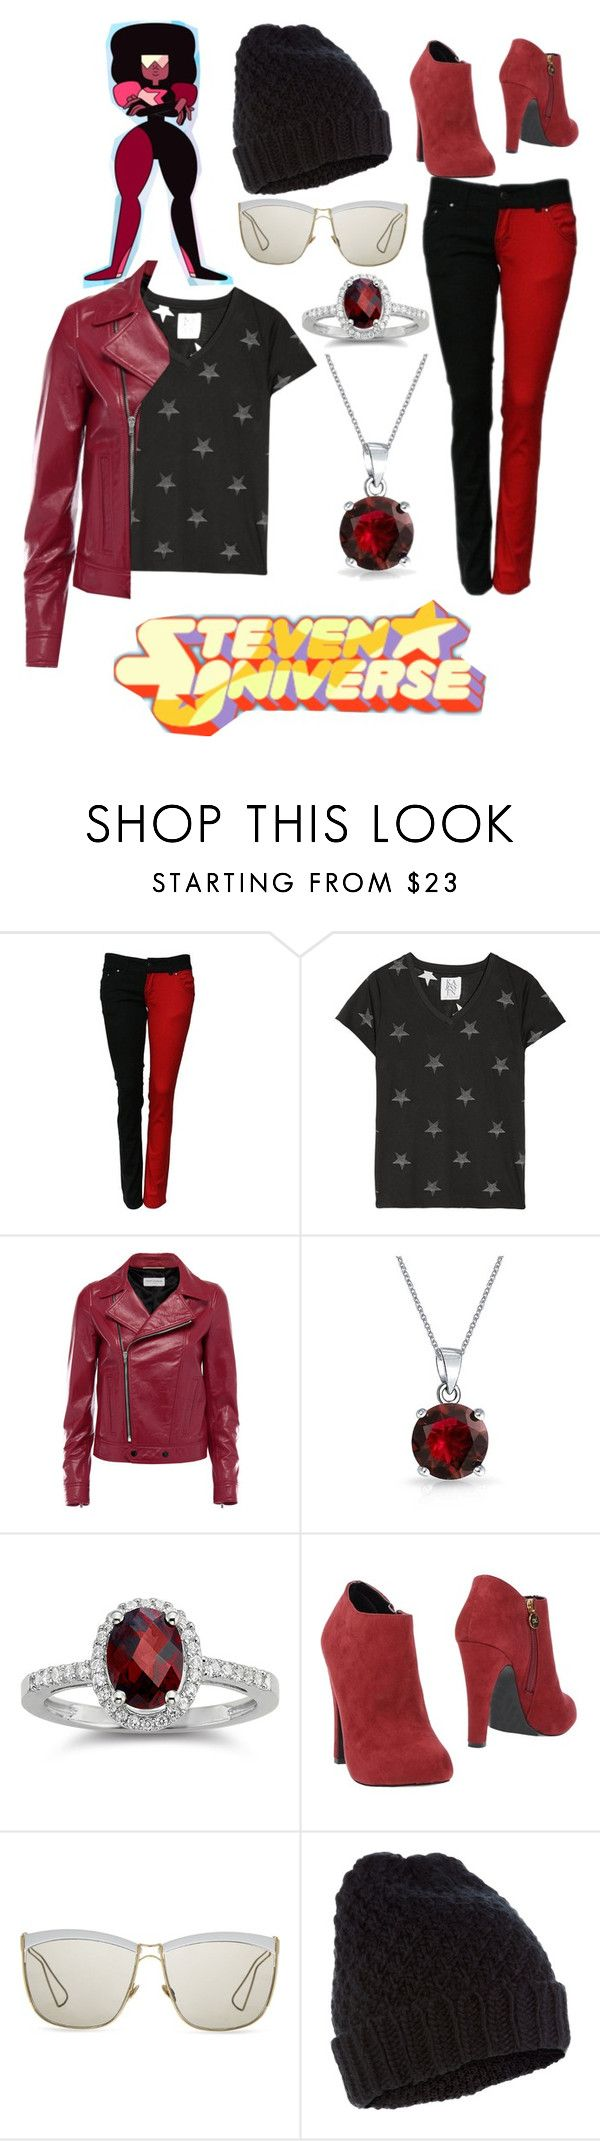 """Garnet from steven universe"" by gabbygainer ❤ liked on Polyvore featuring Zoe Karssen, Yves Saint Laurent, Bling Jewelry, PrimaDonna, Christian Dior, Accessorize, women's clothing, women, female and woman"